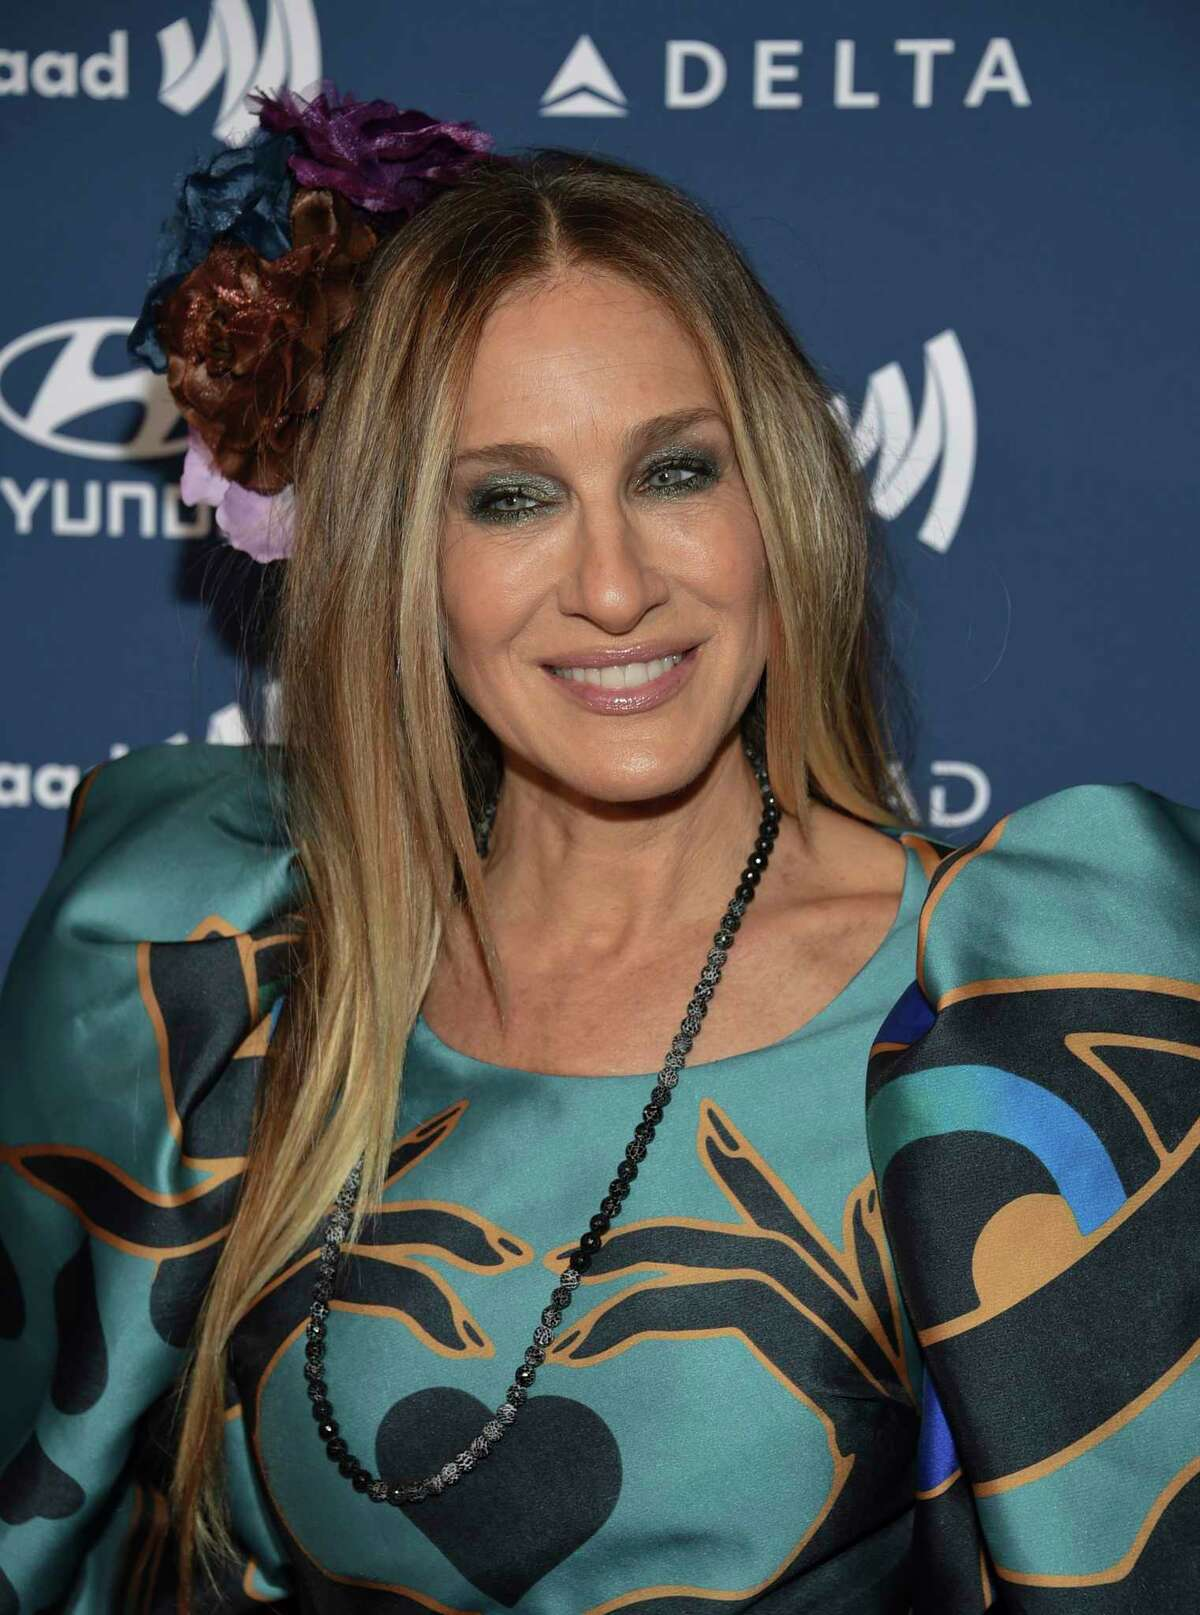 Actress Sarah Jessica Parker attends the 30th annual GLAAD Media Awards at the New York Hilton Midtown on Saturday, May 4, 2019, in New York. (Photo by Evan Agostini/Invision/AP)